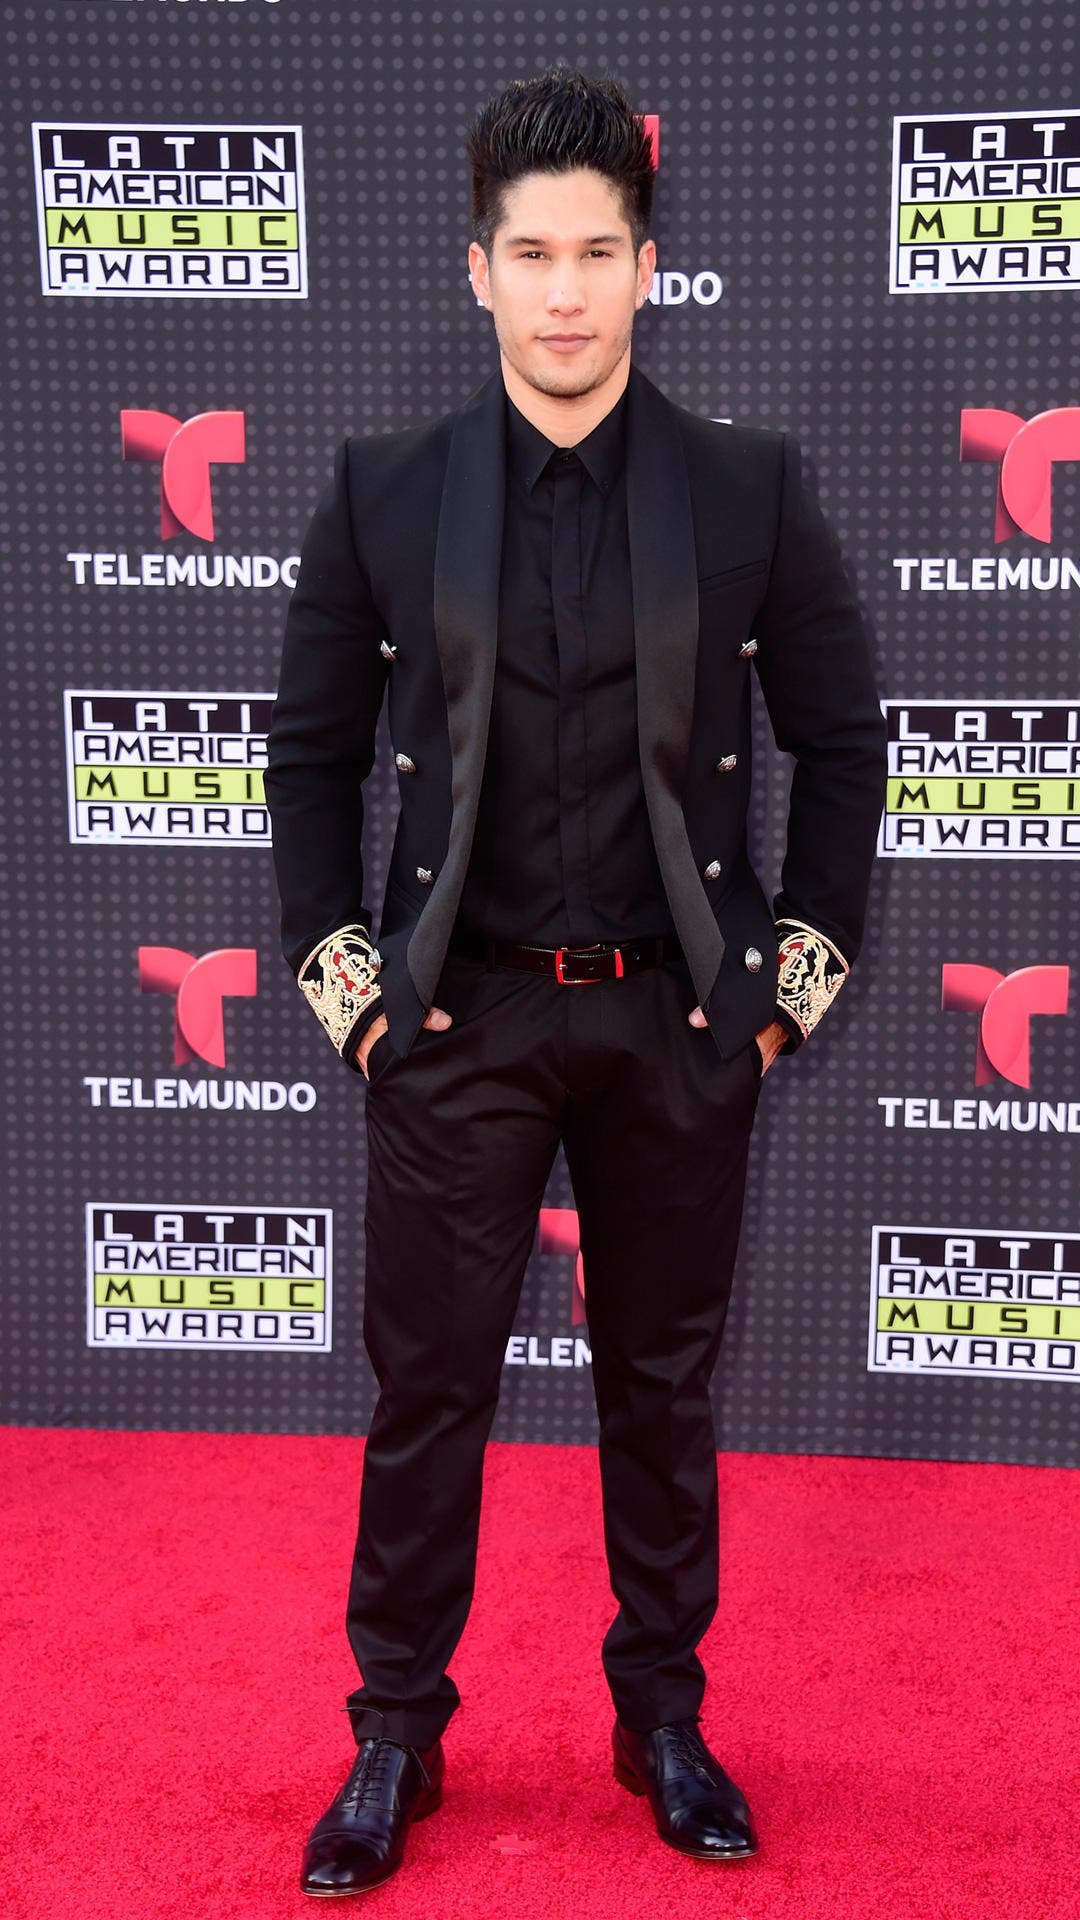 HOLLYWOOD, CA - OCTOBER 08: Chino attends Telemundo's Latin American Music Awards at the Dolby Theatre on October 8, 2015 in Hollywood, California. (Photo by Frazer Harrison/Getty Images)